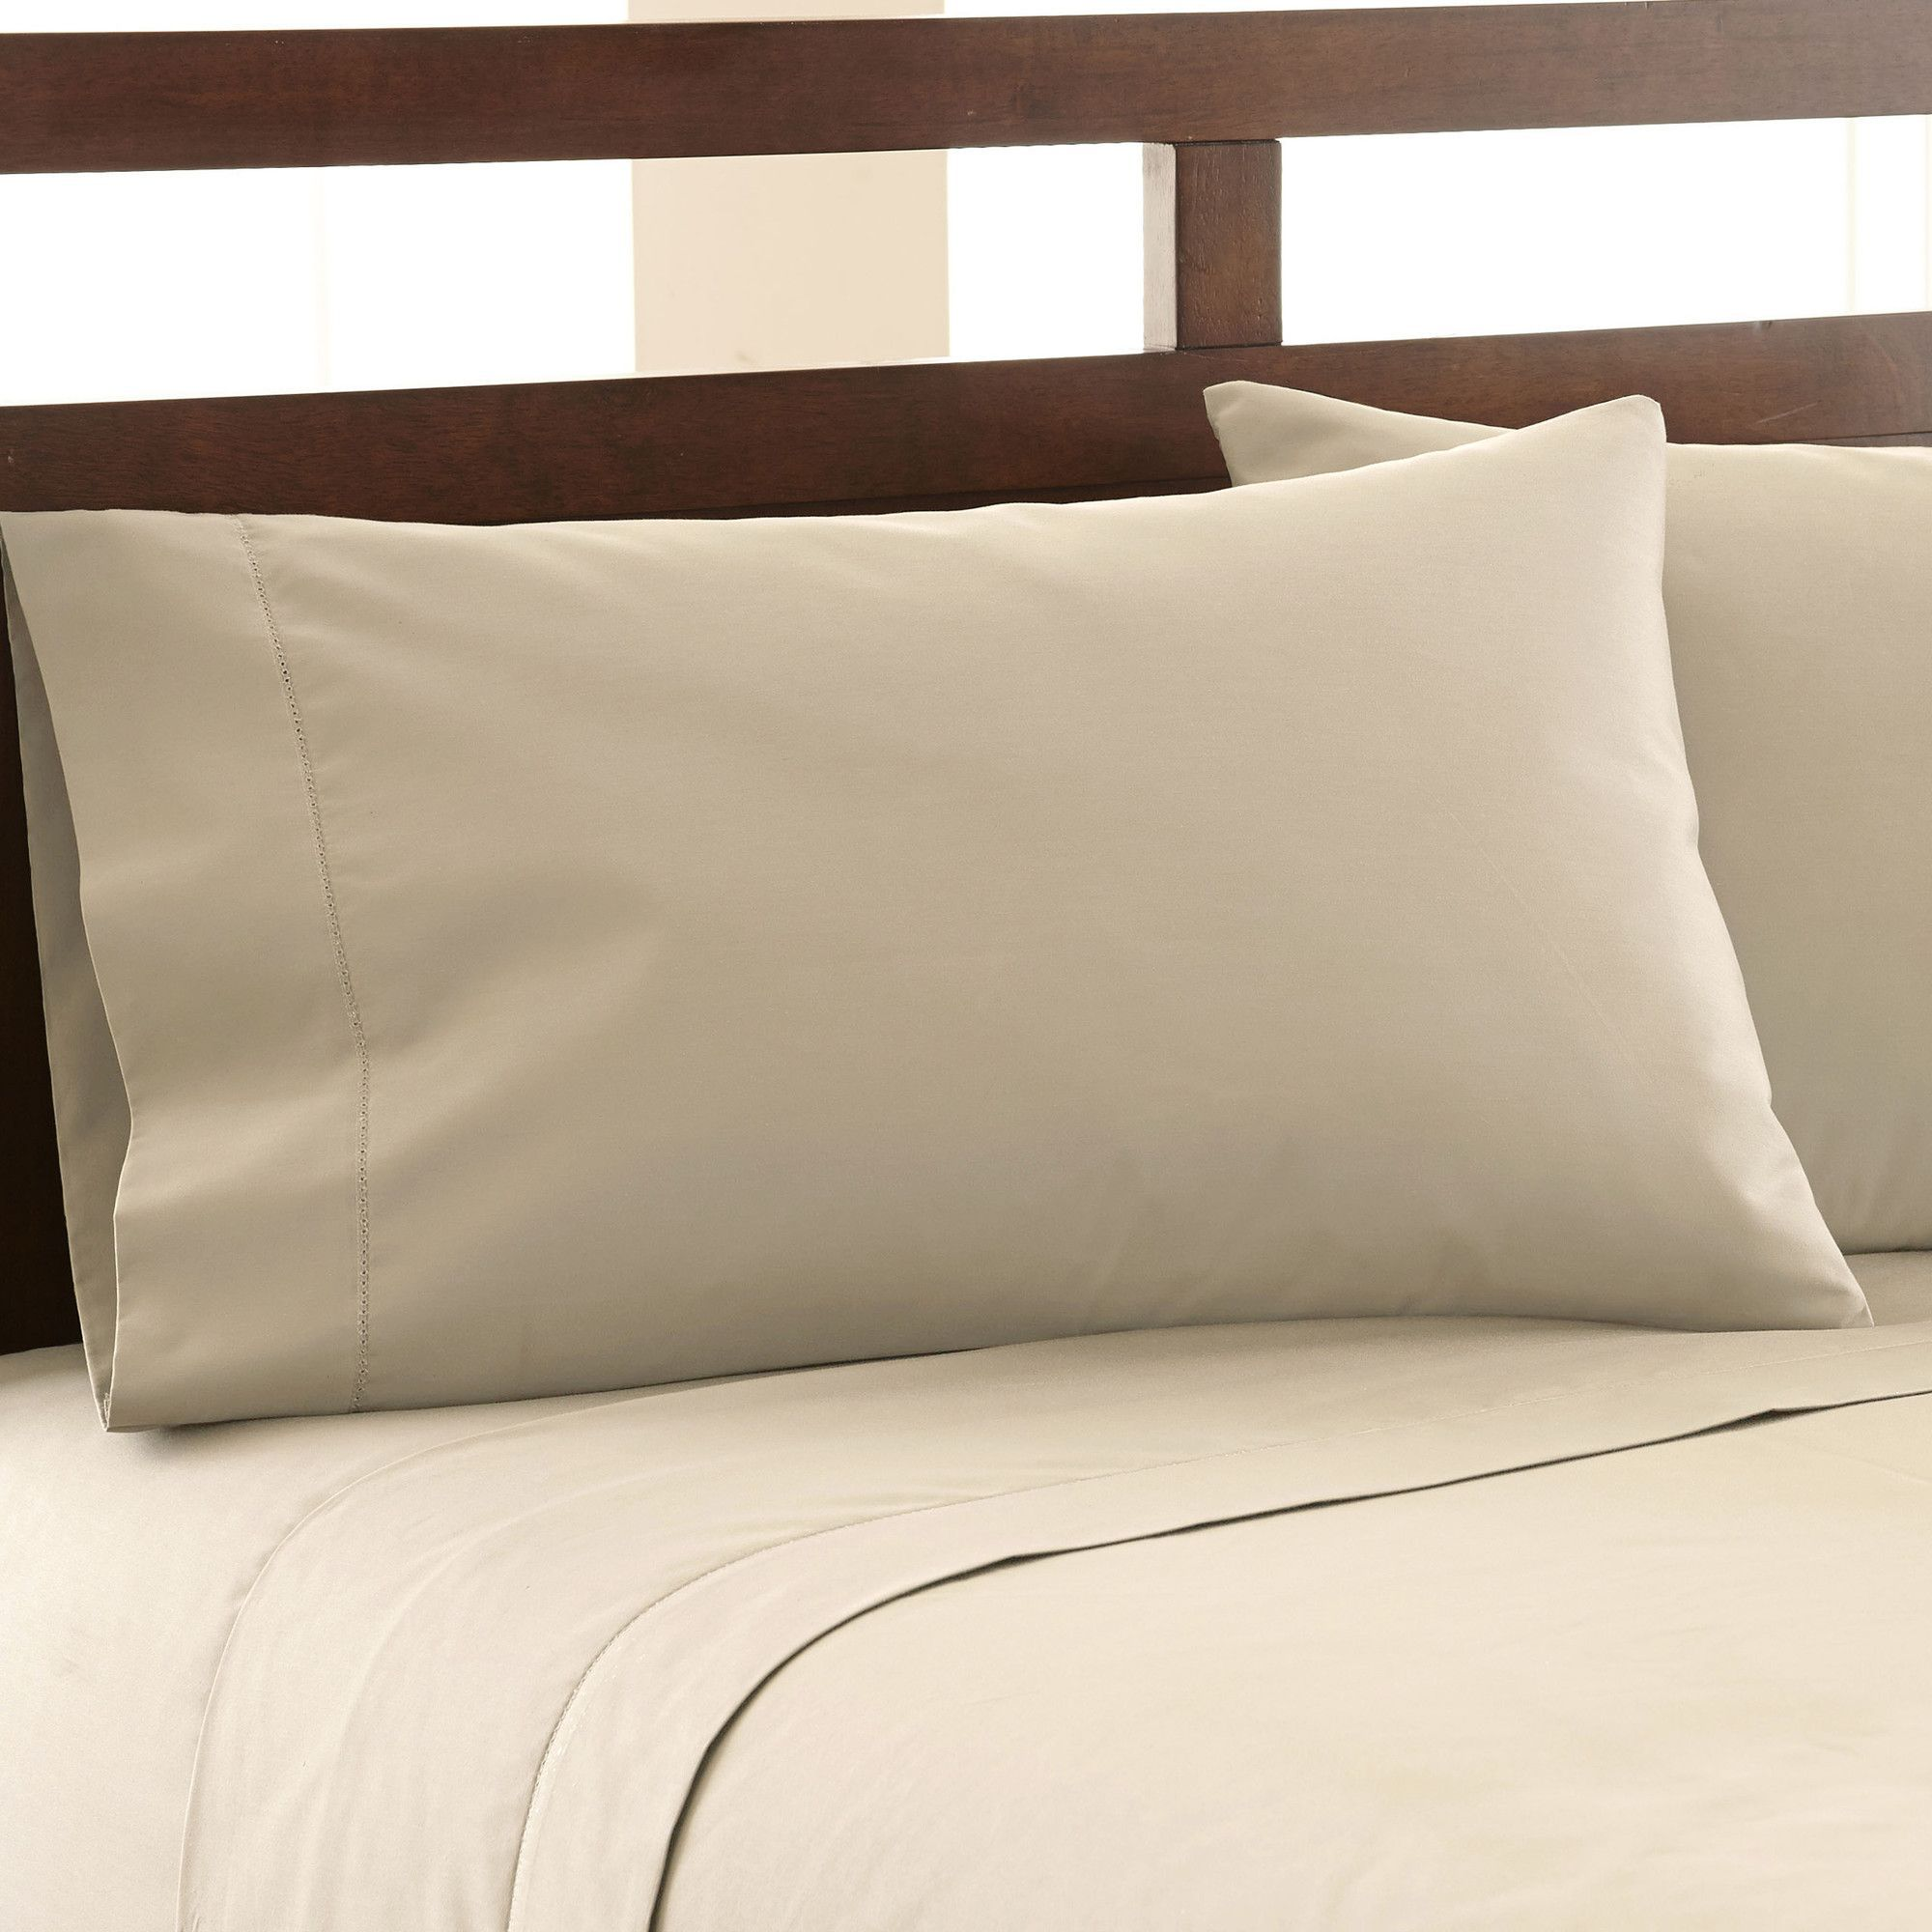 1200 Thread Count Cotton Blend Sheet Set